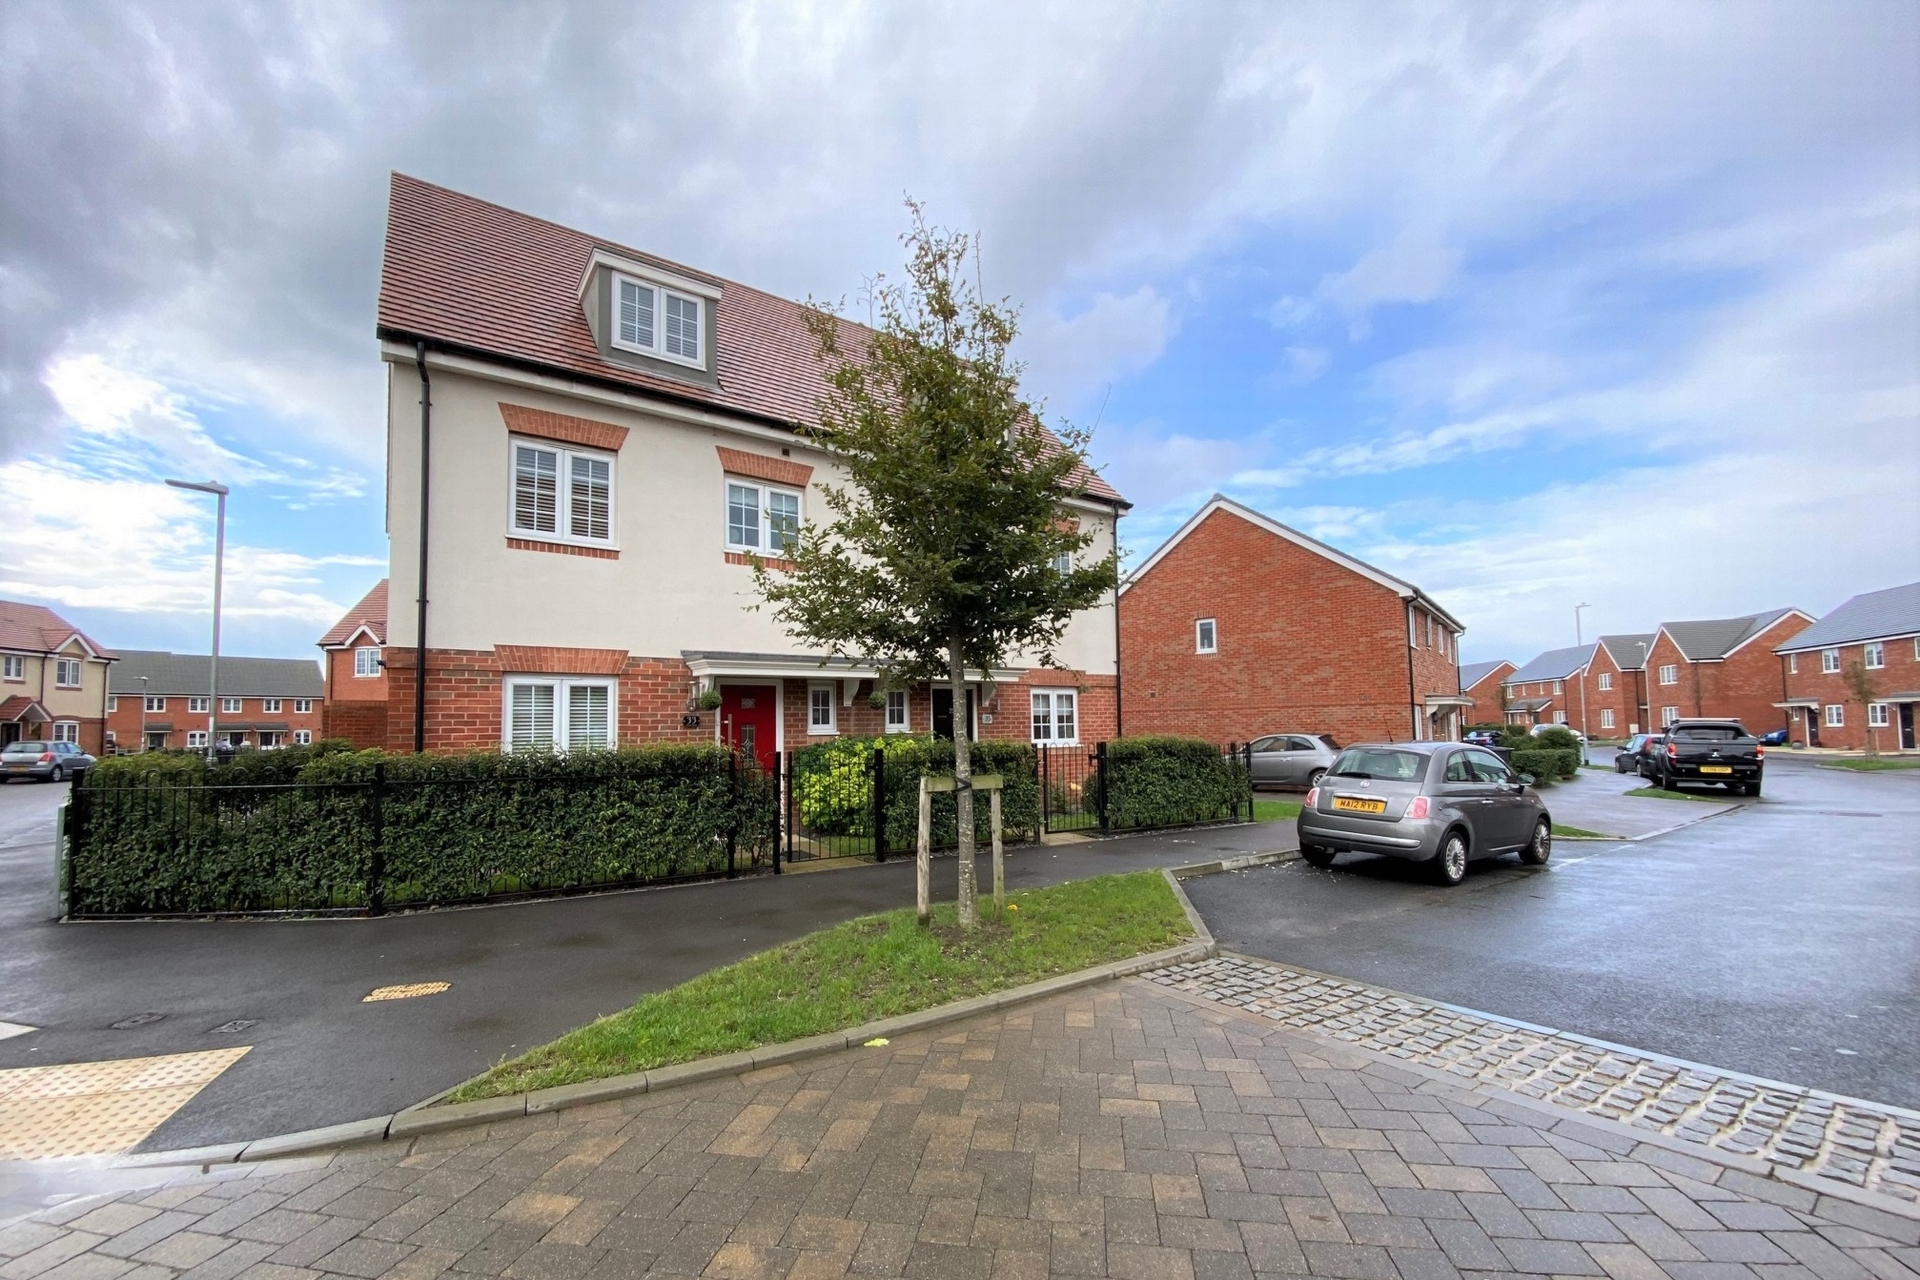 Hyton Drive  Deal  CT14